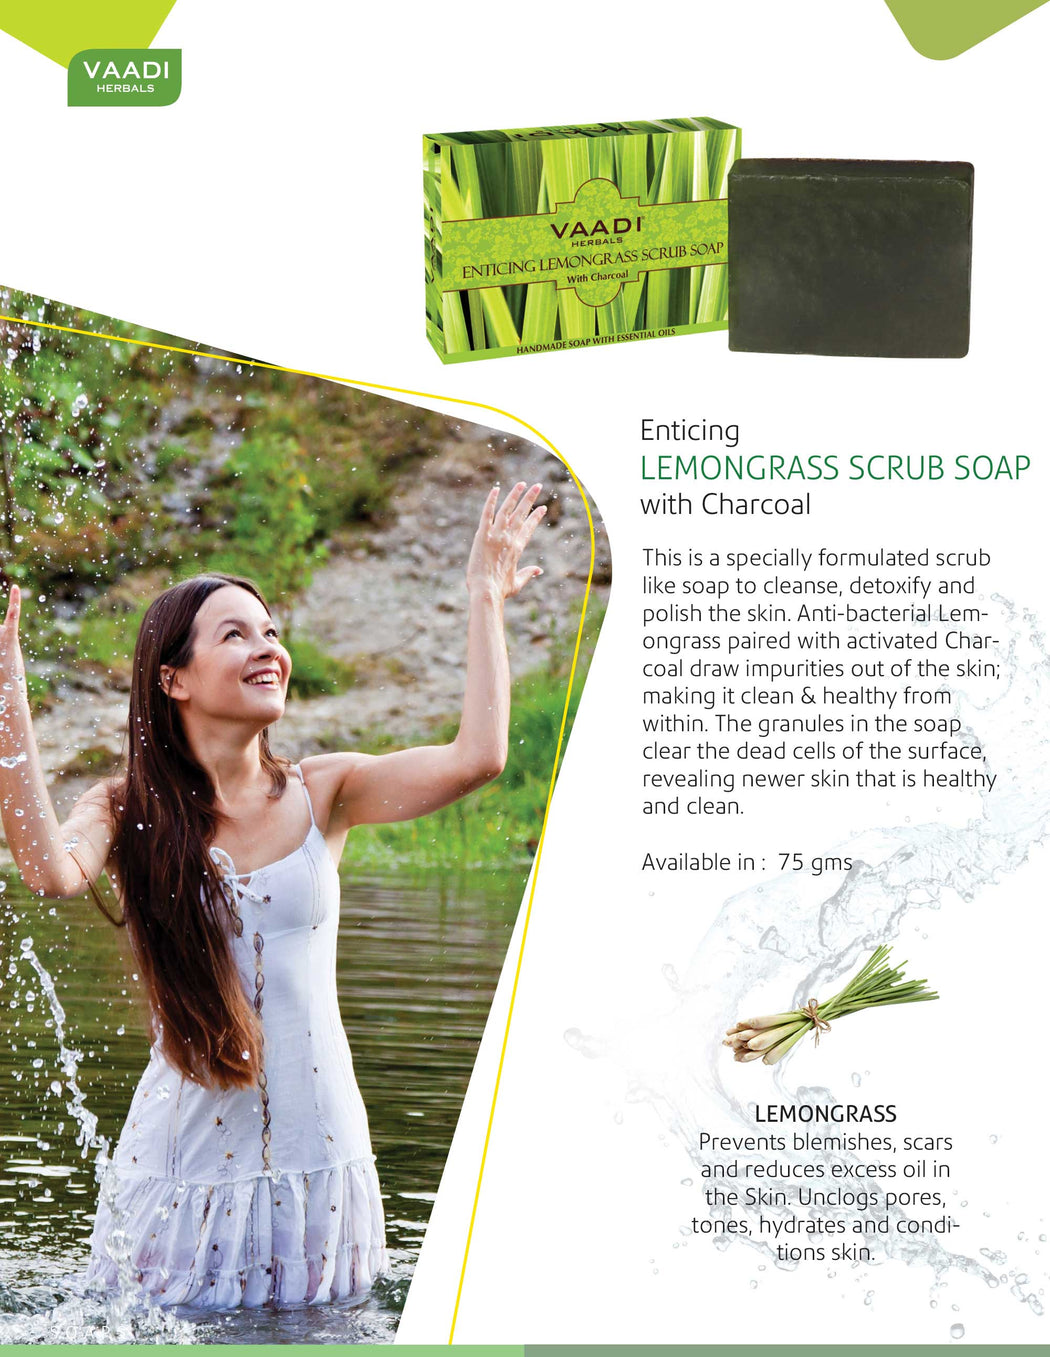 Enticing Organic Lemongrass Soap with Charcoal - Exfoliates & Polishes Skin (3 x 75 gms / 2.7 oz)